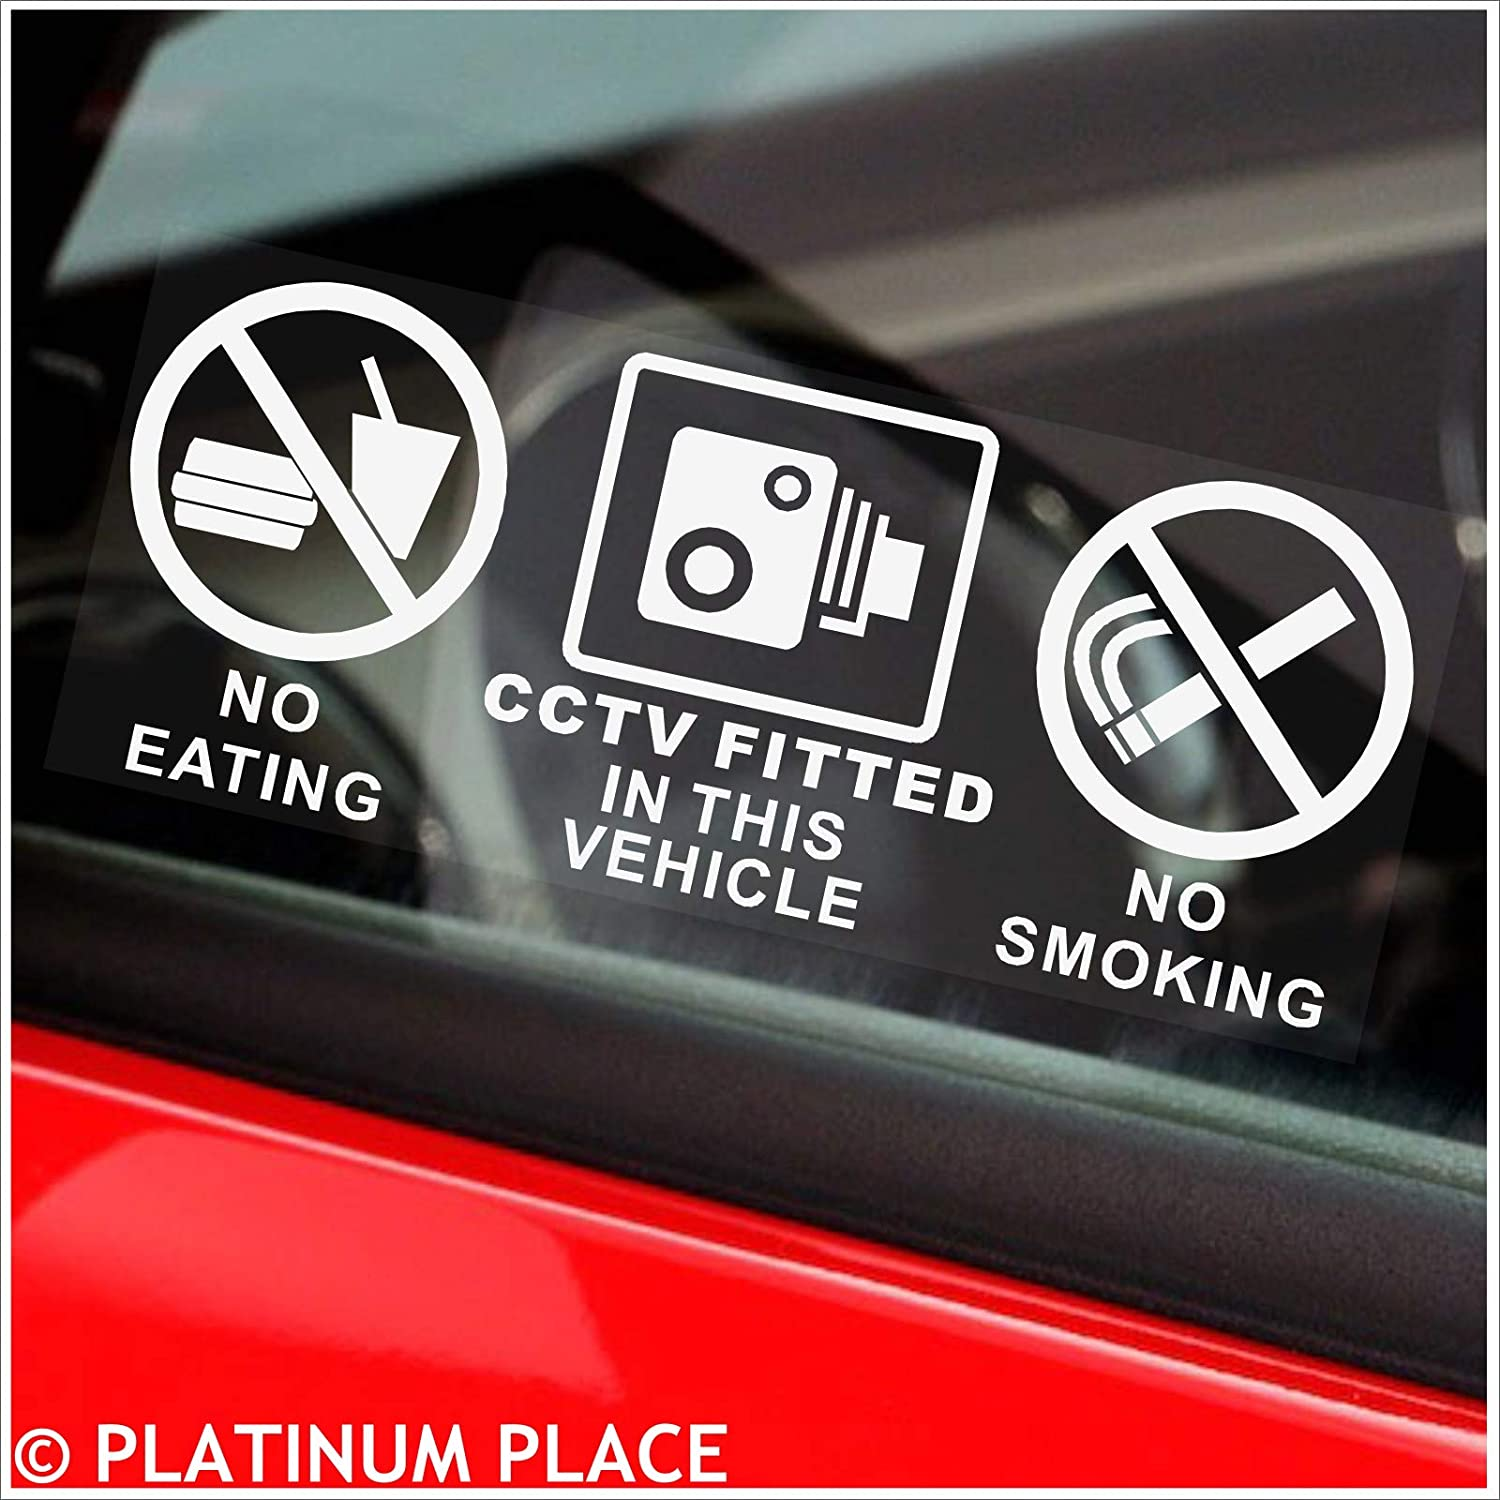 Platinum Place 2 x Vehicle INTERNAL Stickers-No Smoking,Eating,Drinking,CCTV In Operation-Car,Van,Lorry,Truck,Coach Warning Sign,Notice,Window